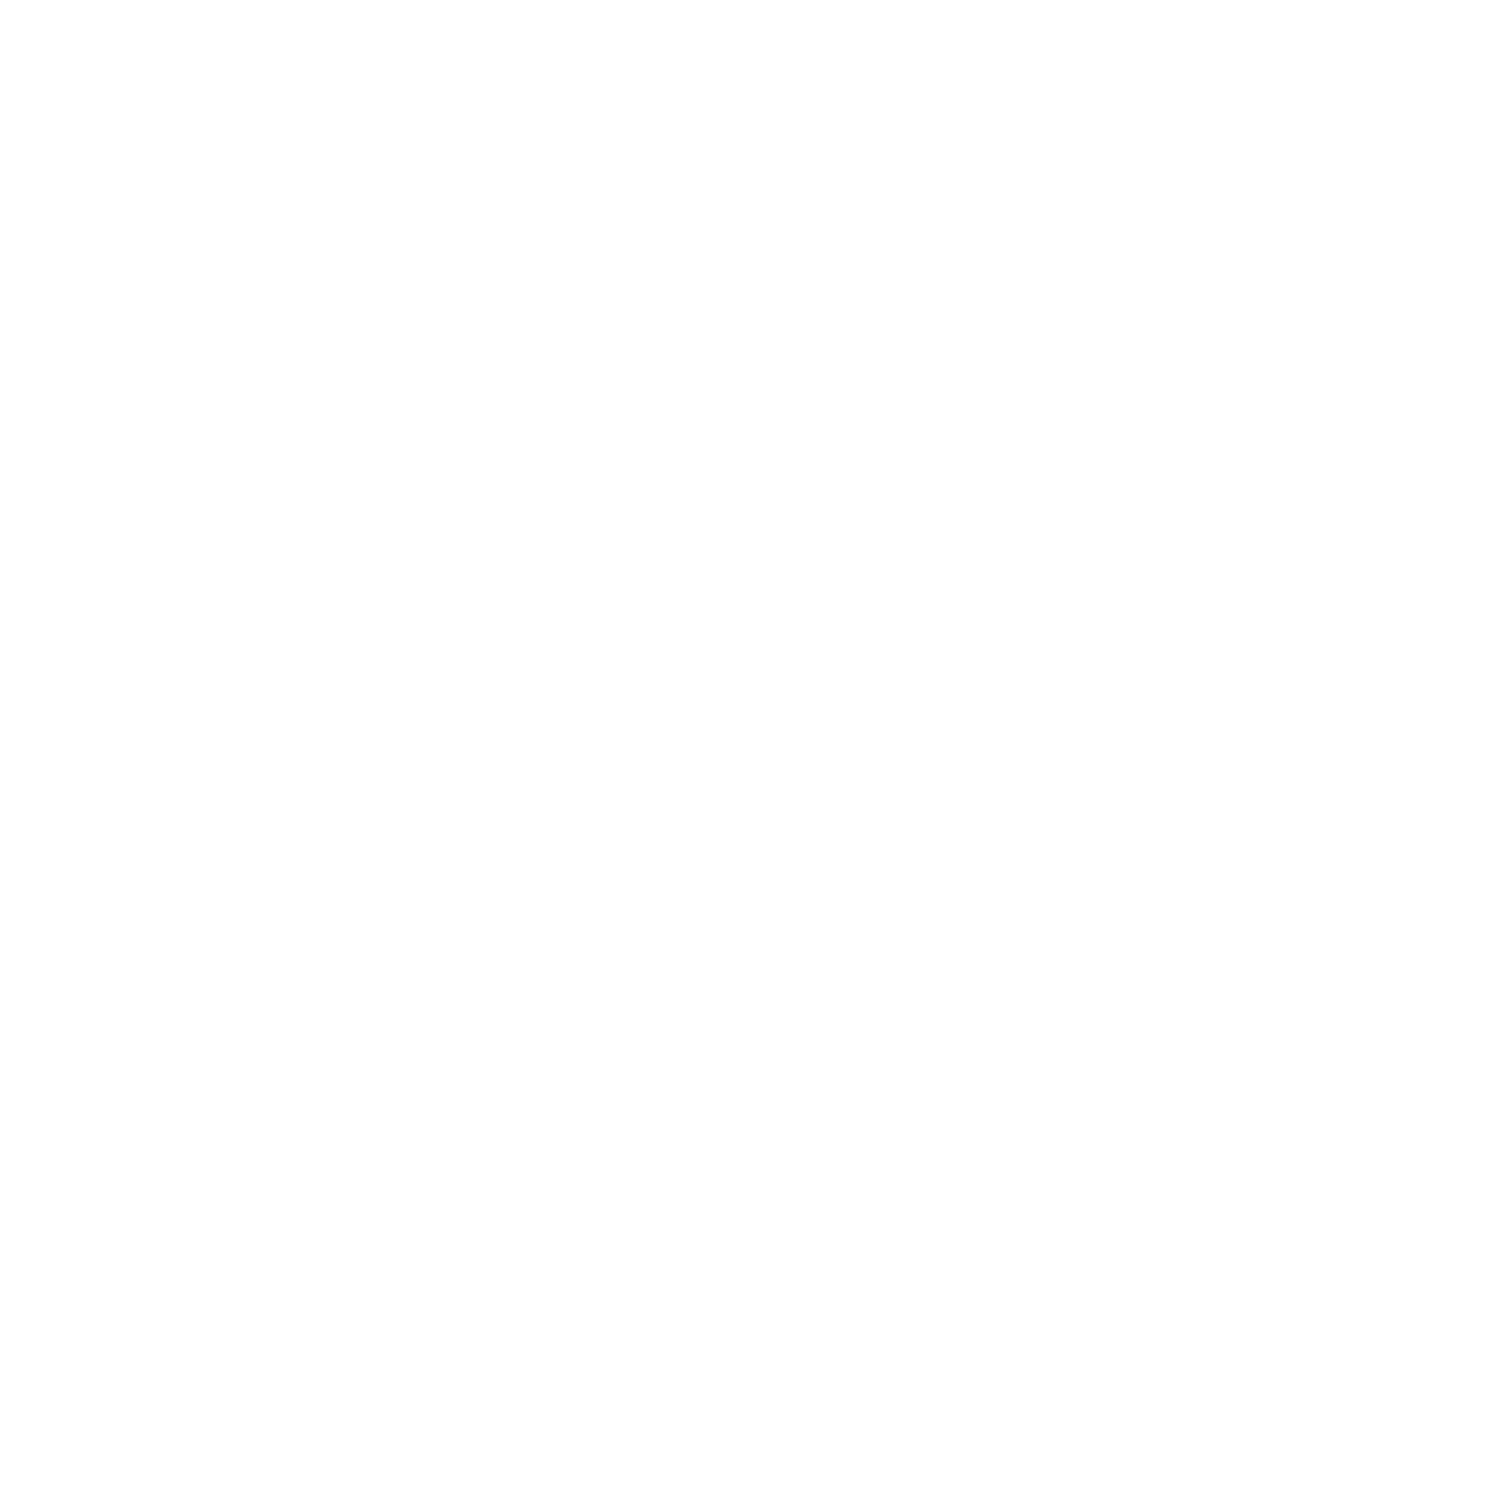 R&R Events